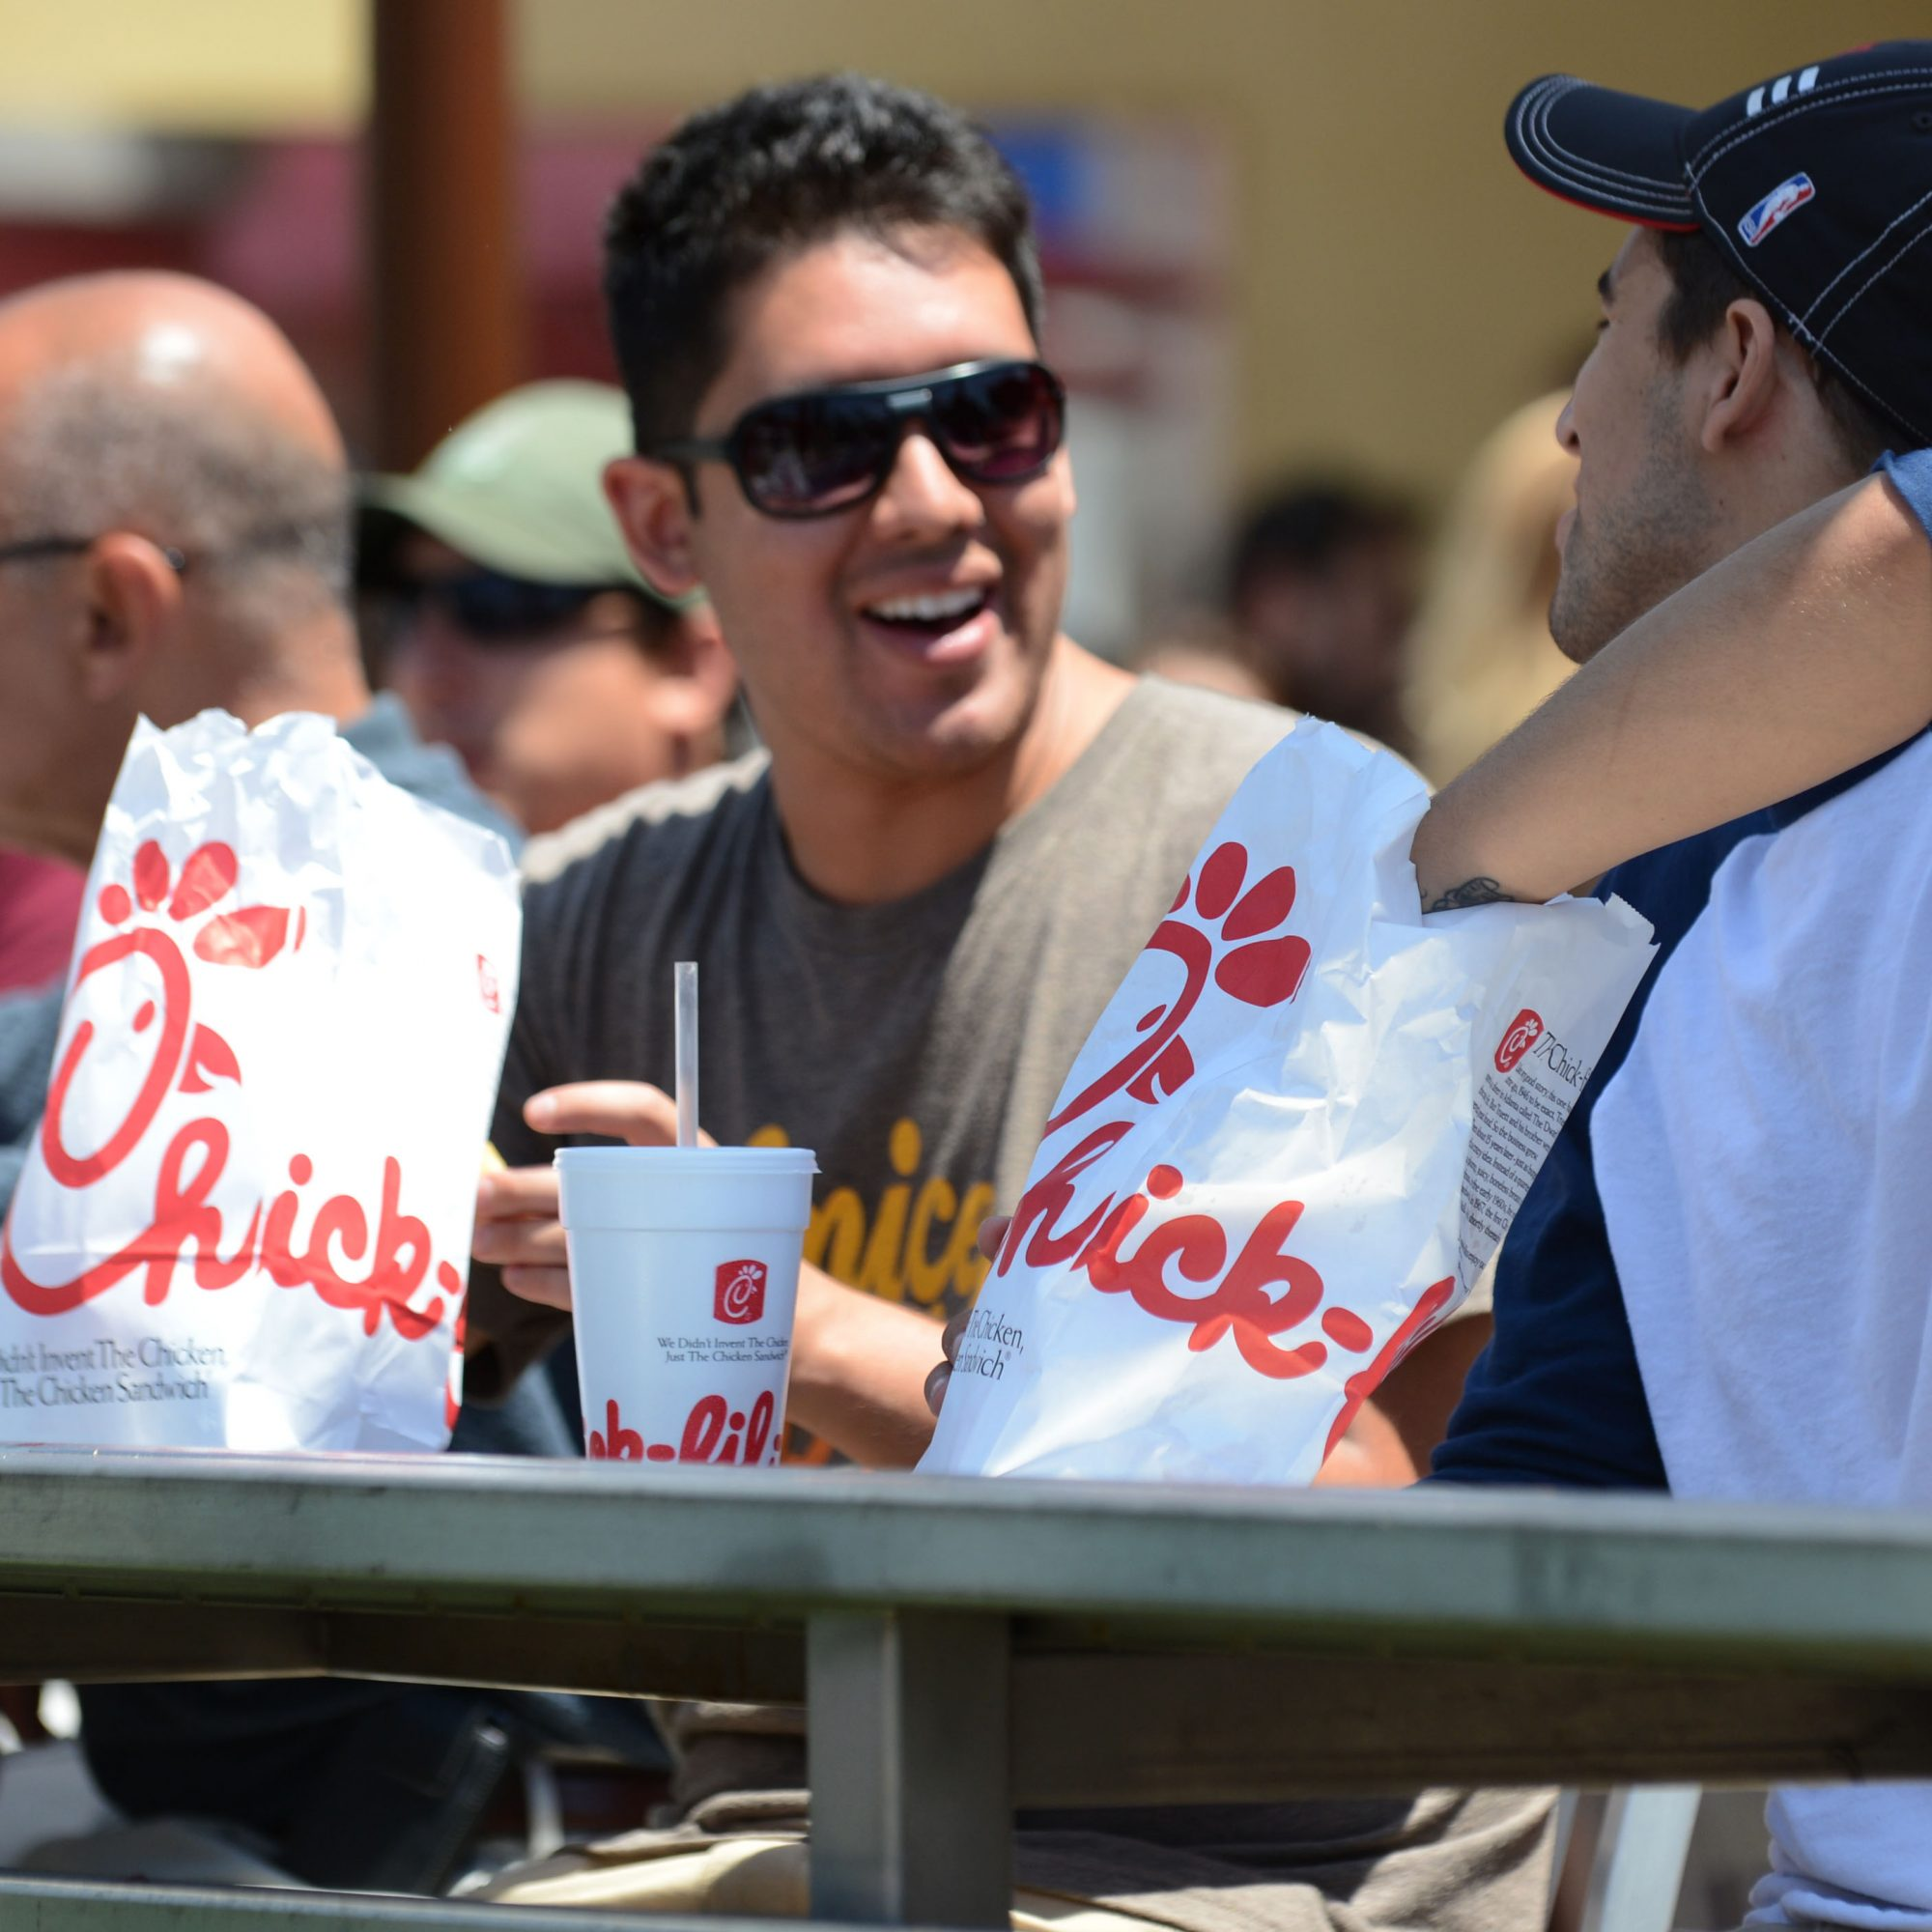 chick-fil-a-friendliest-fwx